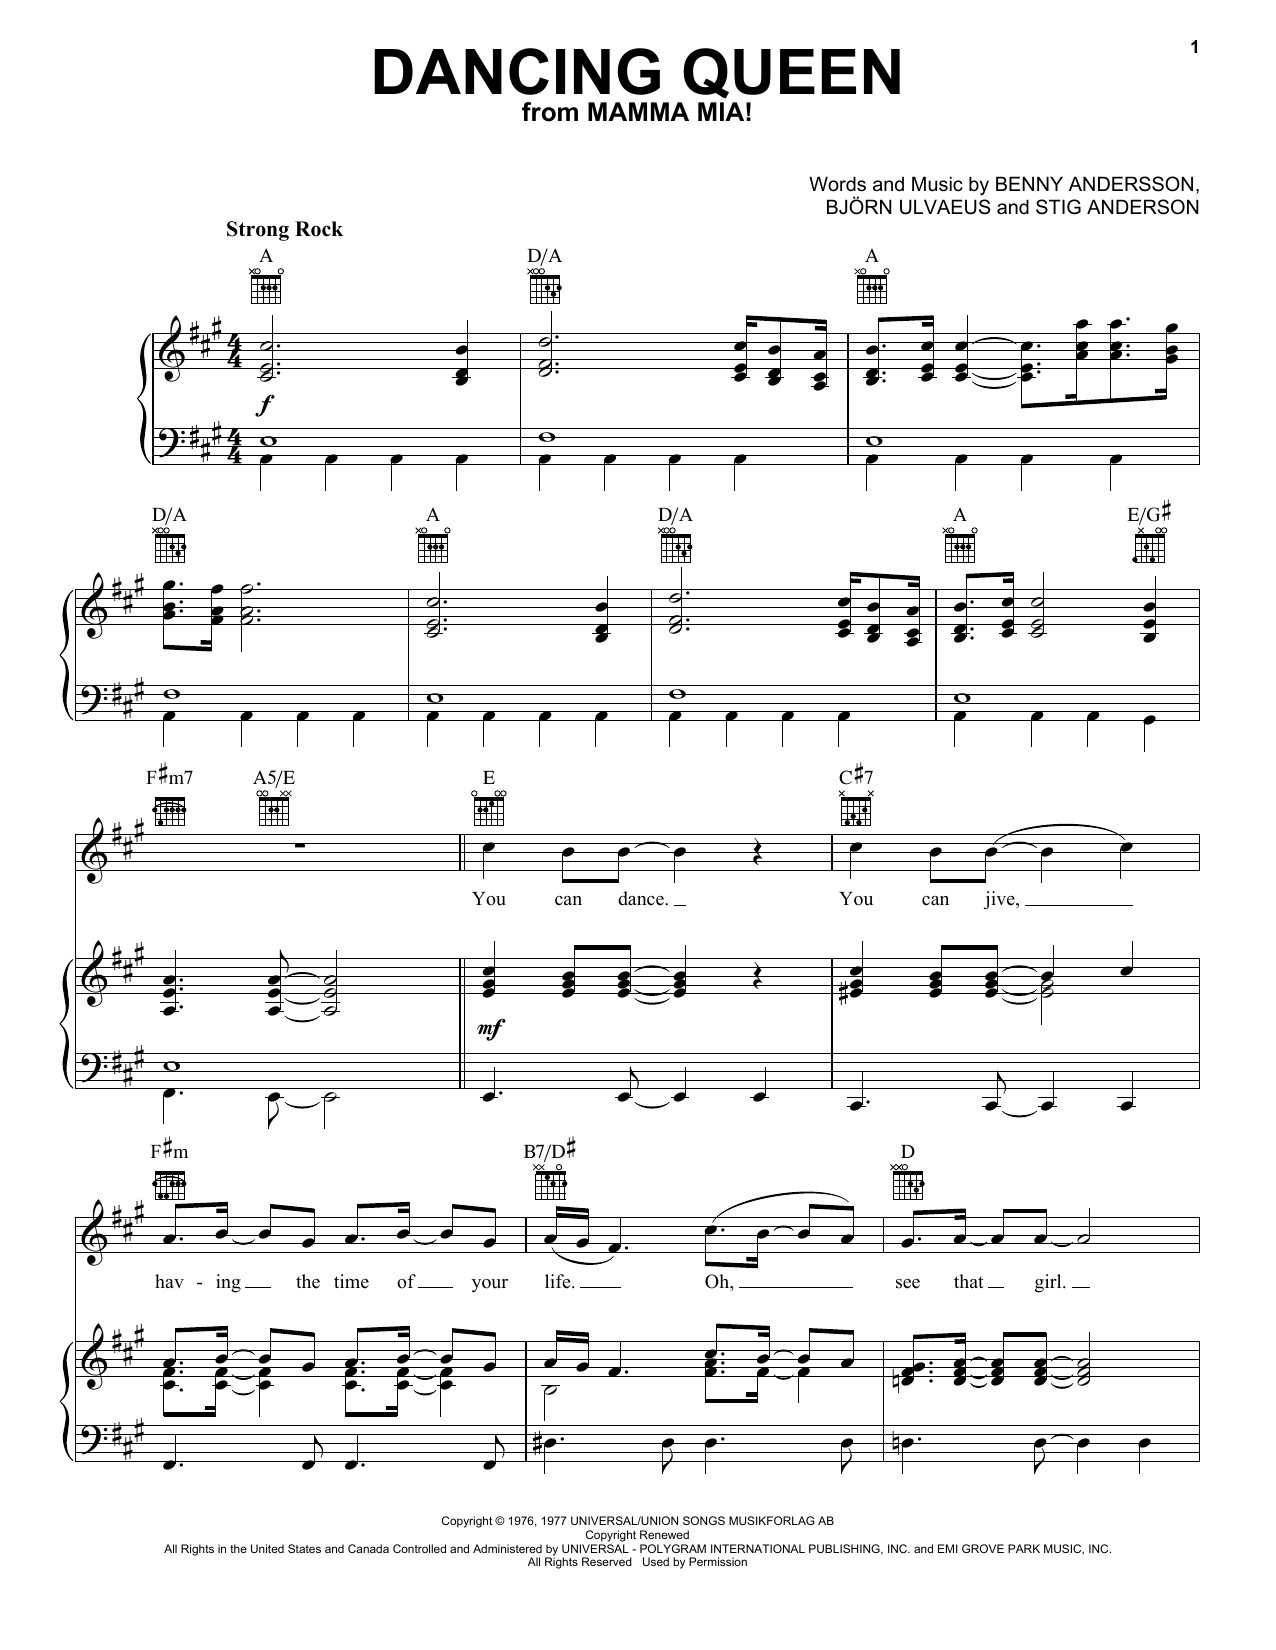 ABBA 'Dancing Queen' Sheet Music Notes, Chords | Download Printable Ukulele  with Strumming Patterns - SKU: 120669